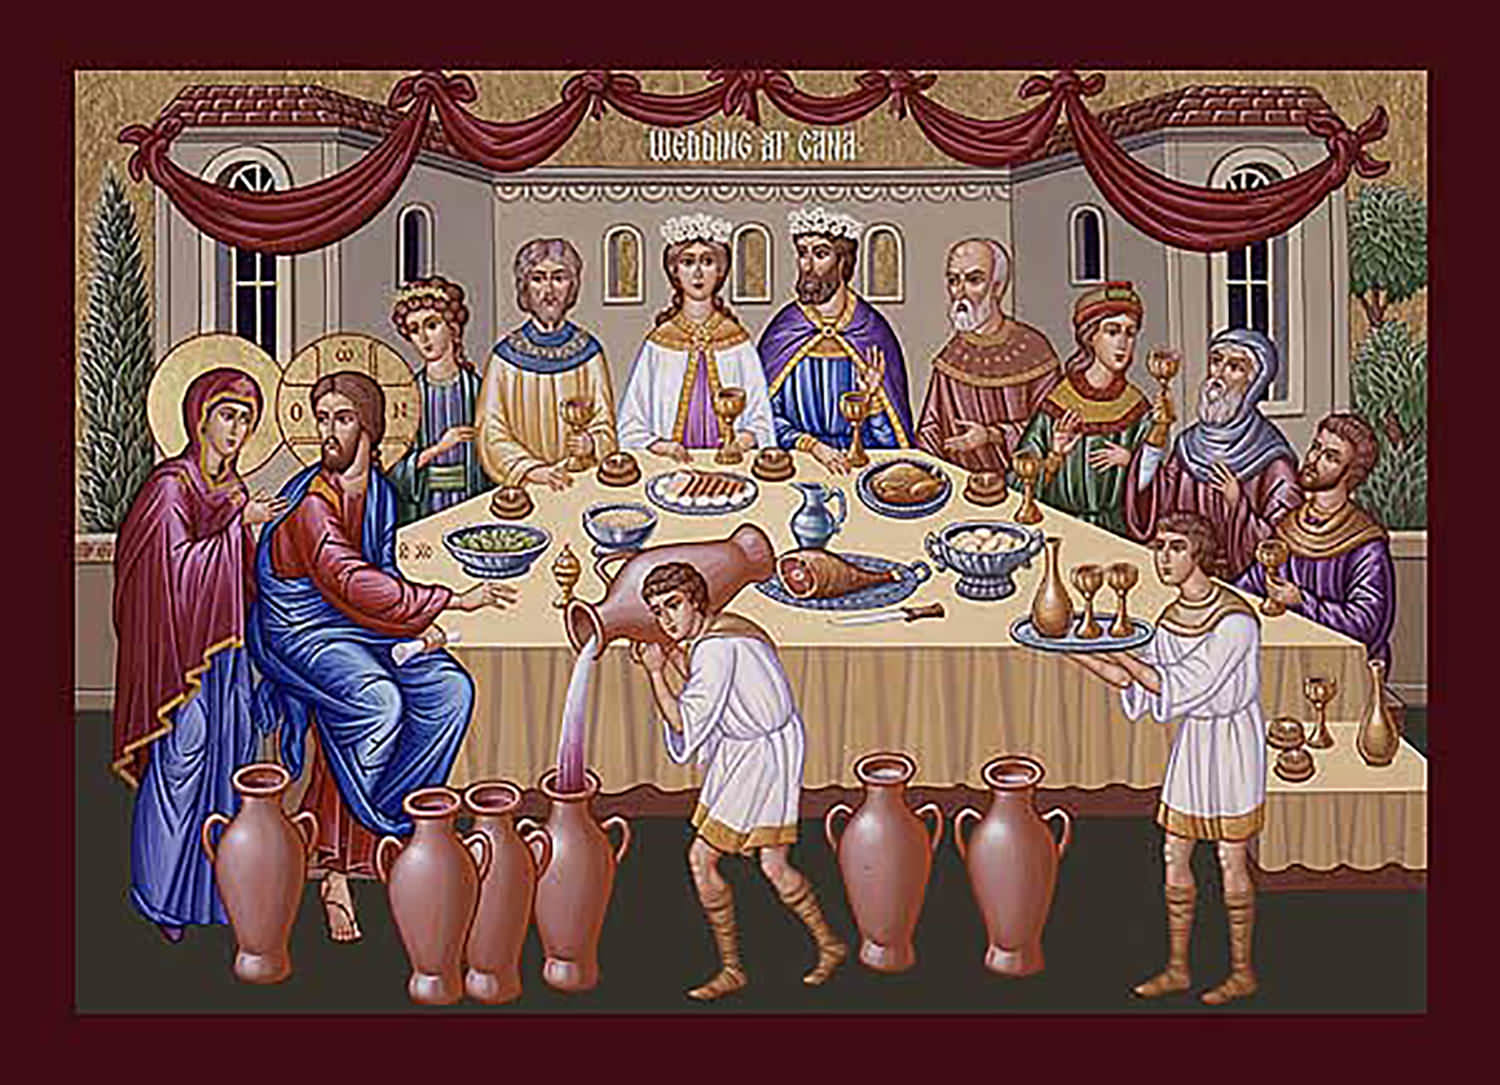 Was the wine at the wedding of cana alcoholic